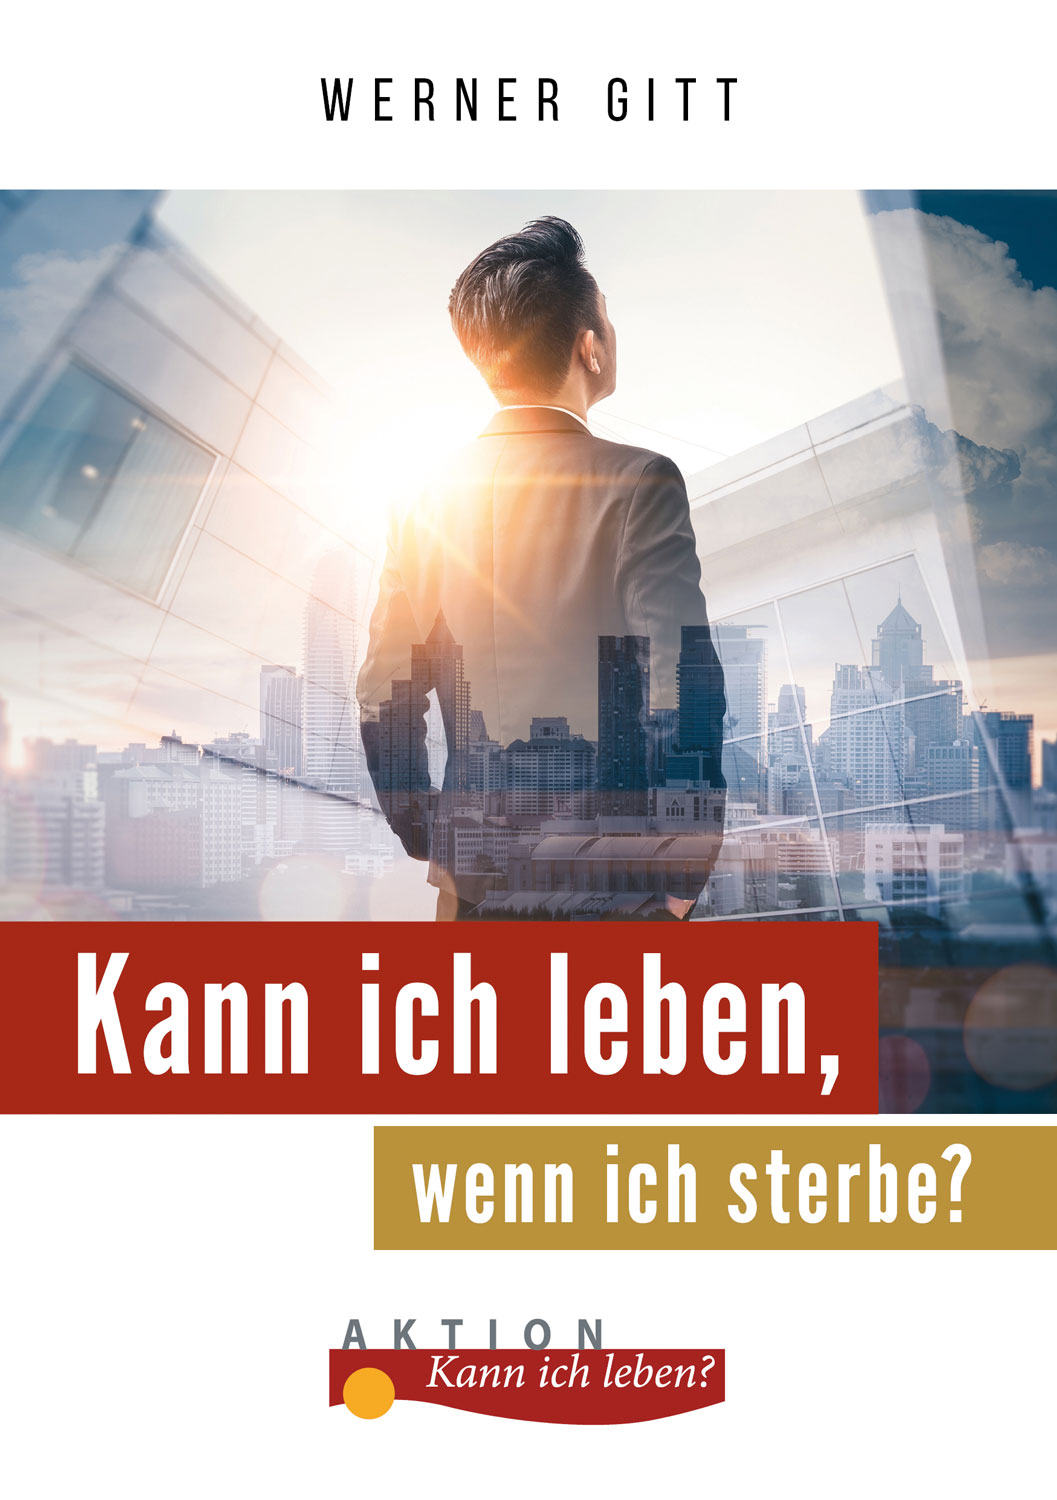 German: Can I live if I die?